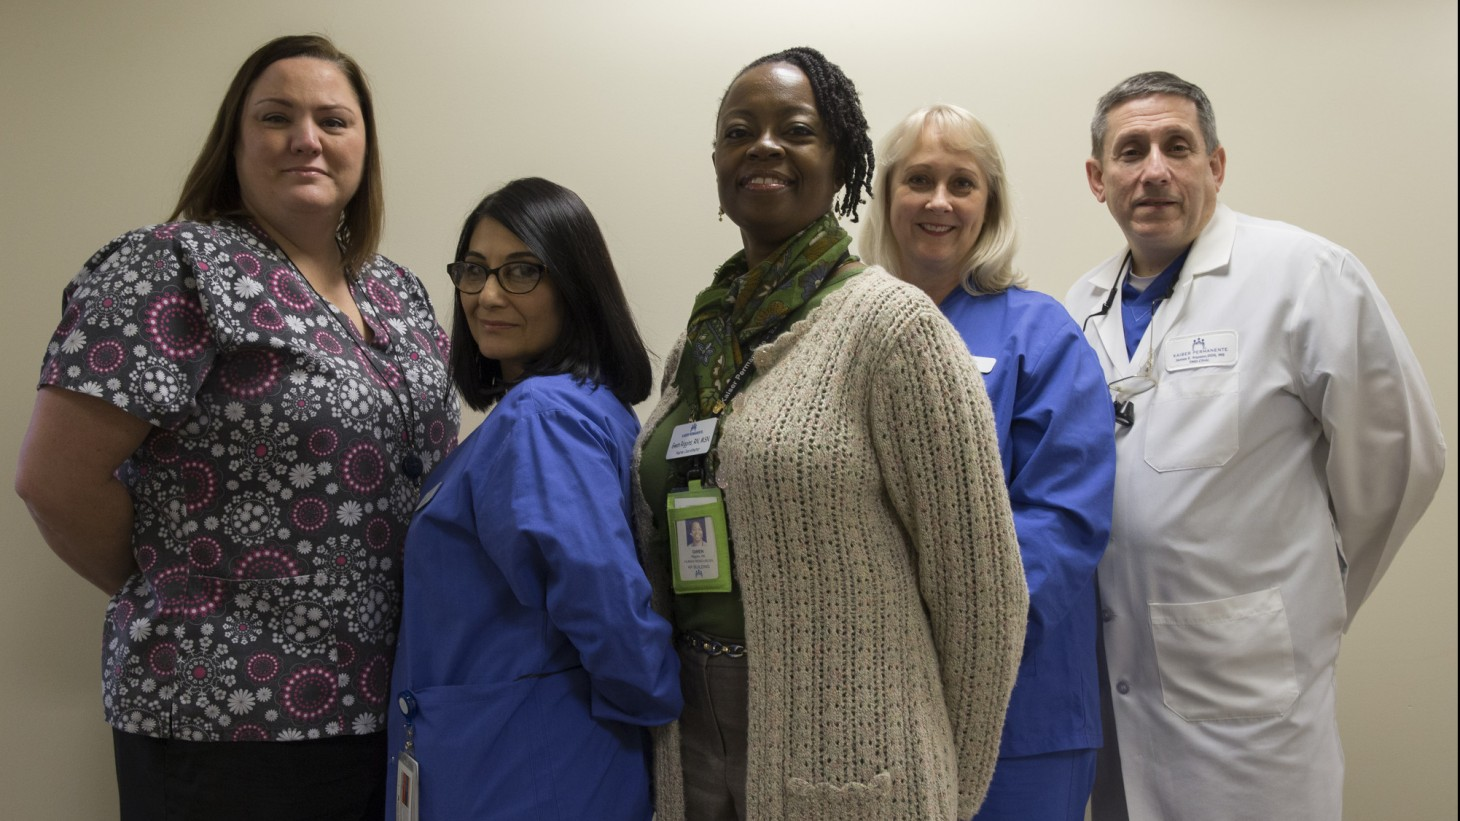 A group of health care workers posing together